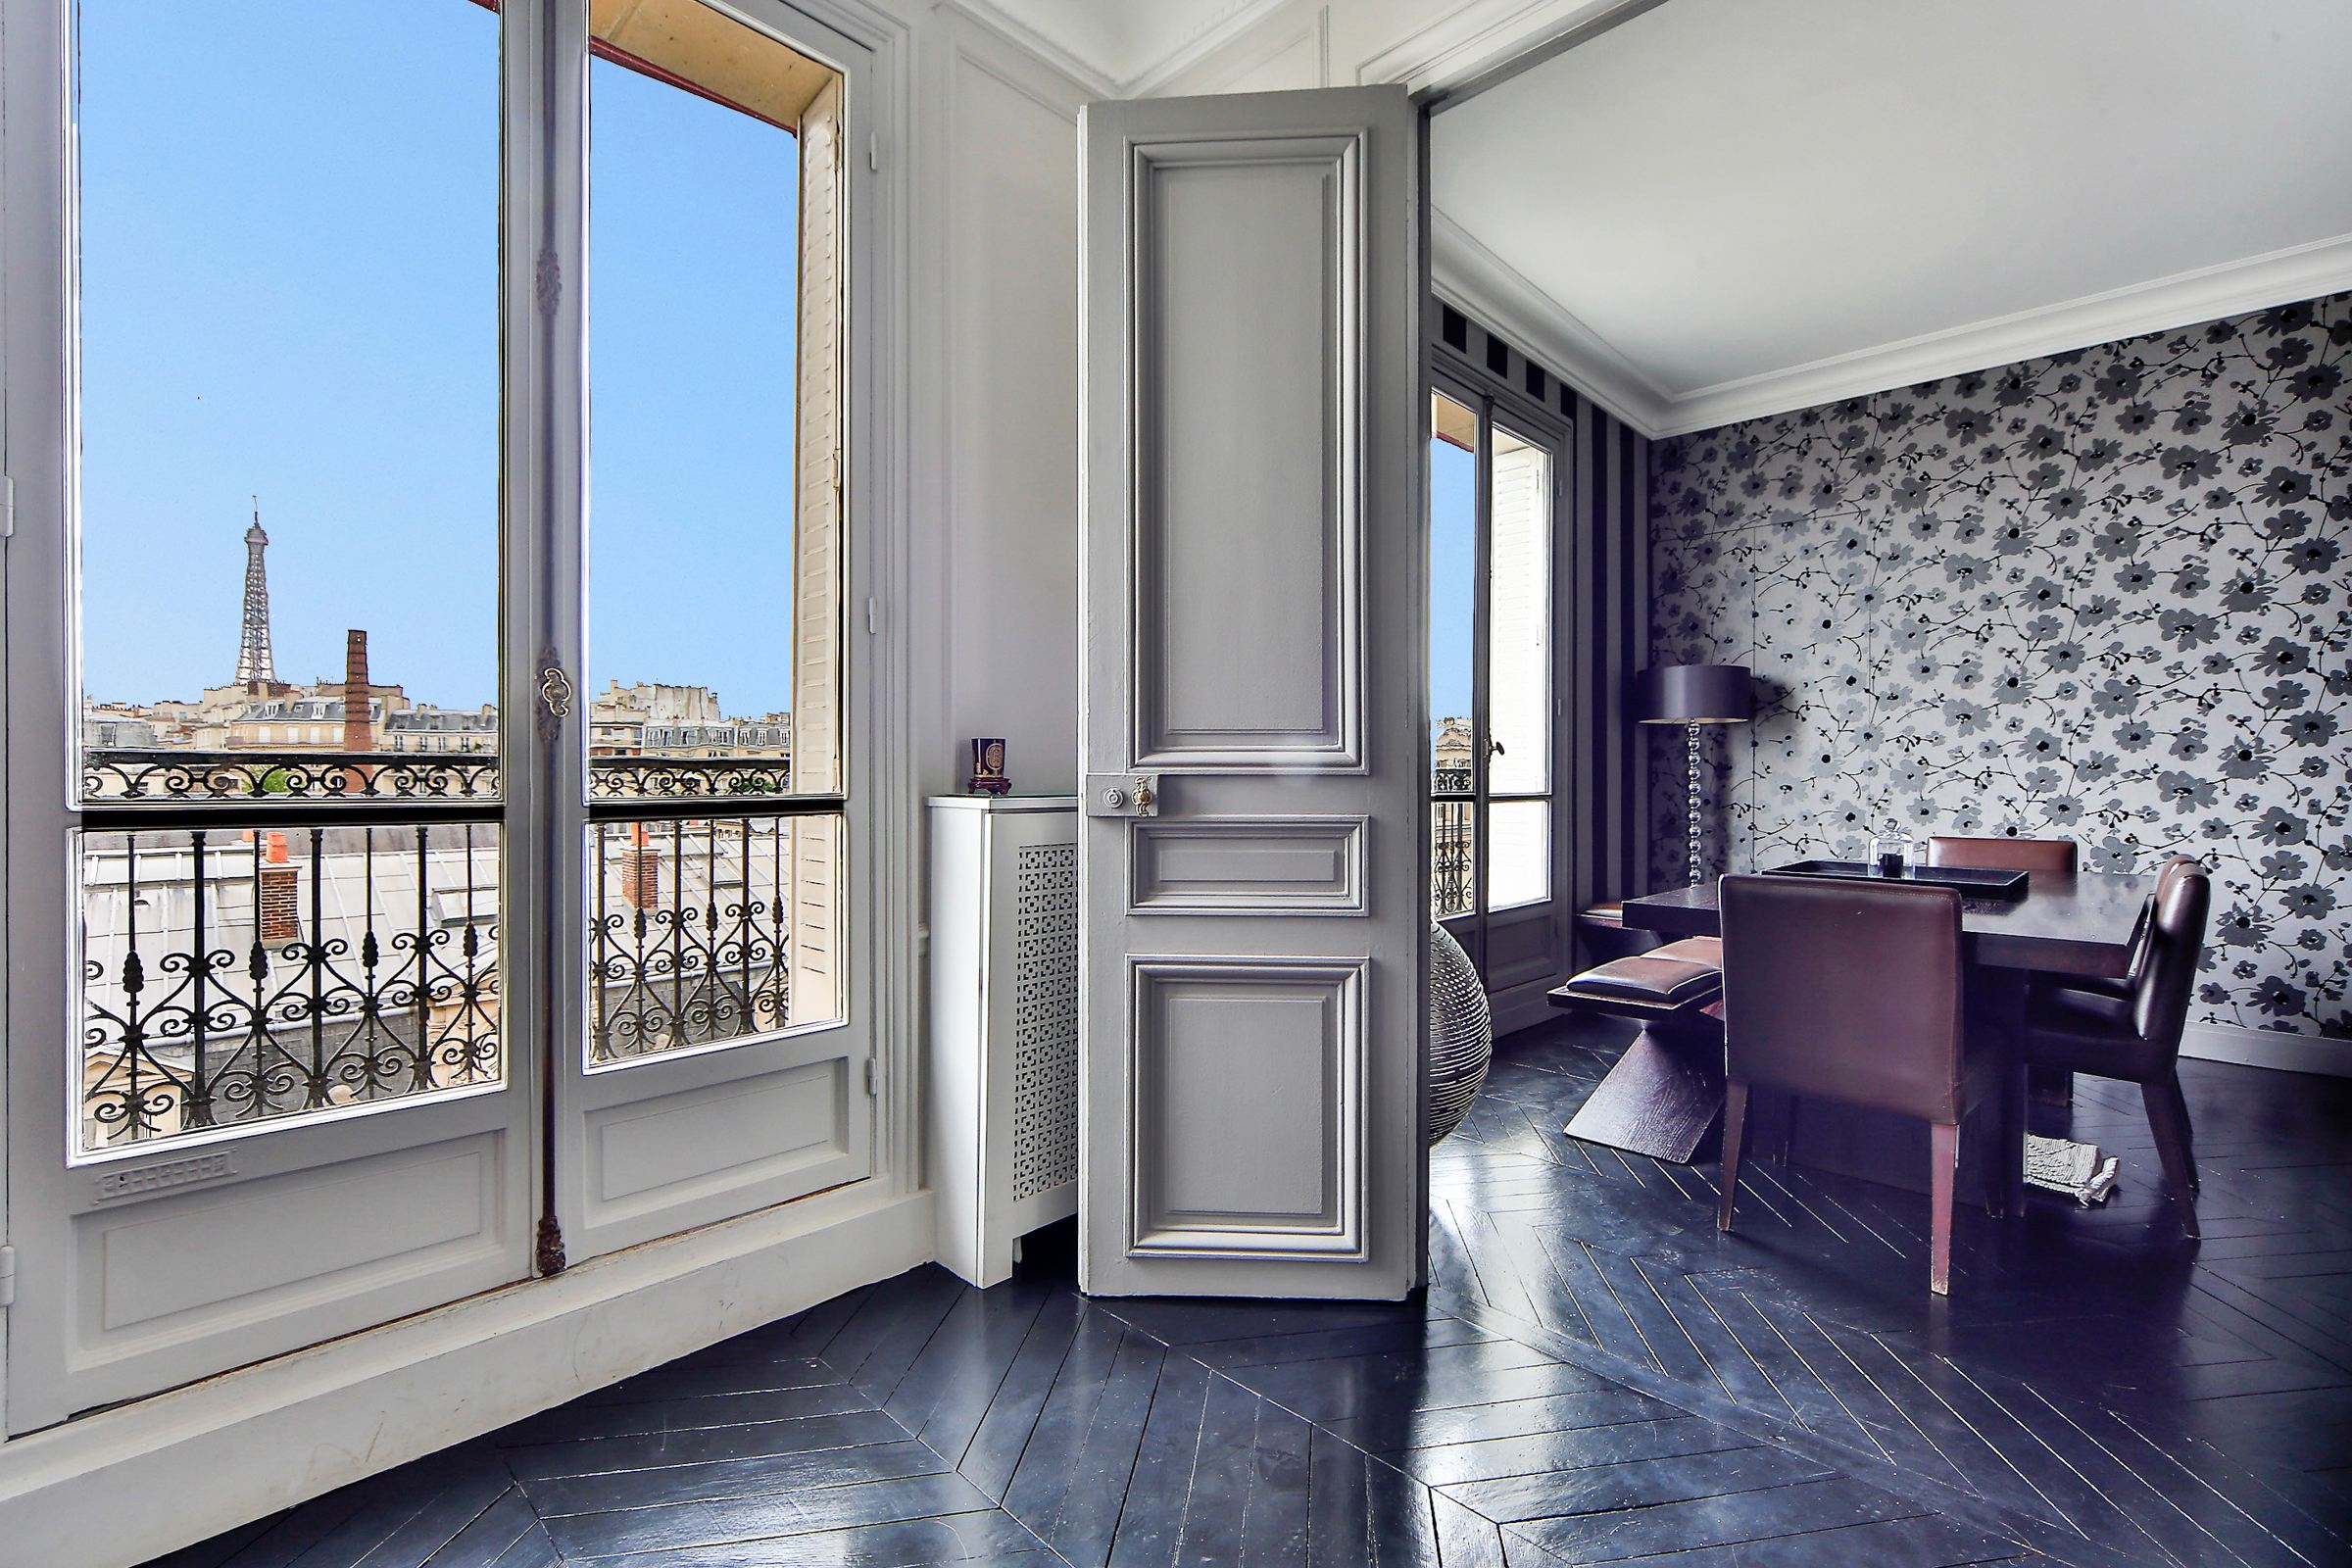 Property For Sale at Paris 16 - Pompe. Apartment. Eiifel Tower view.